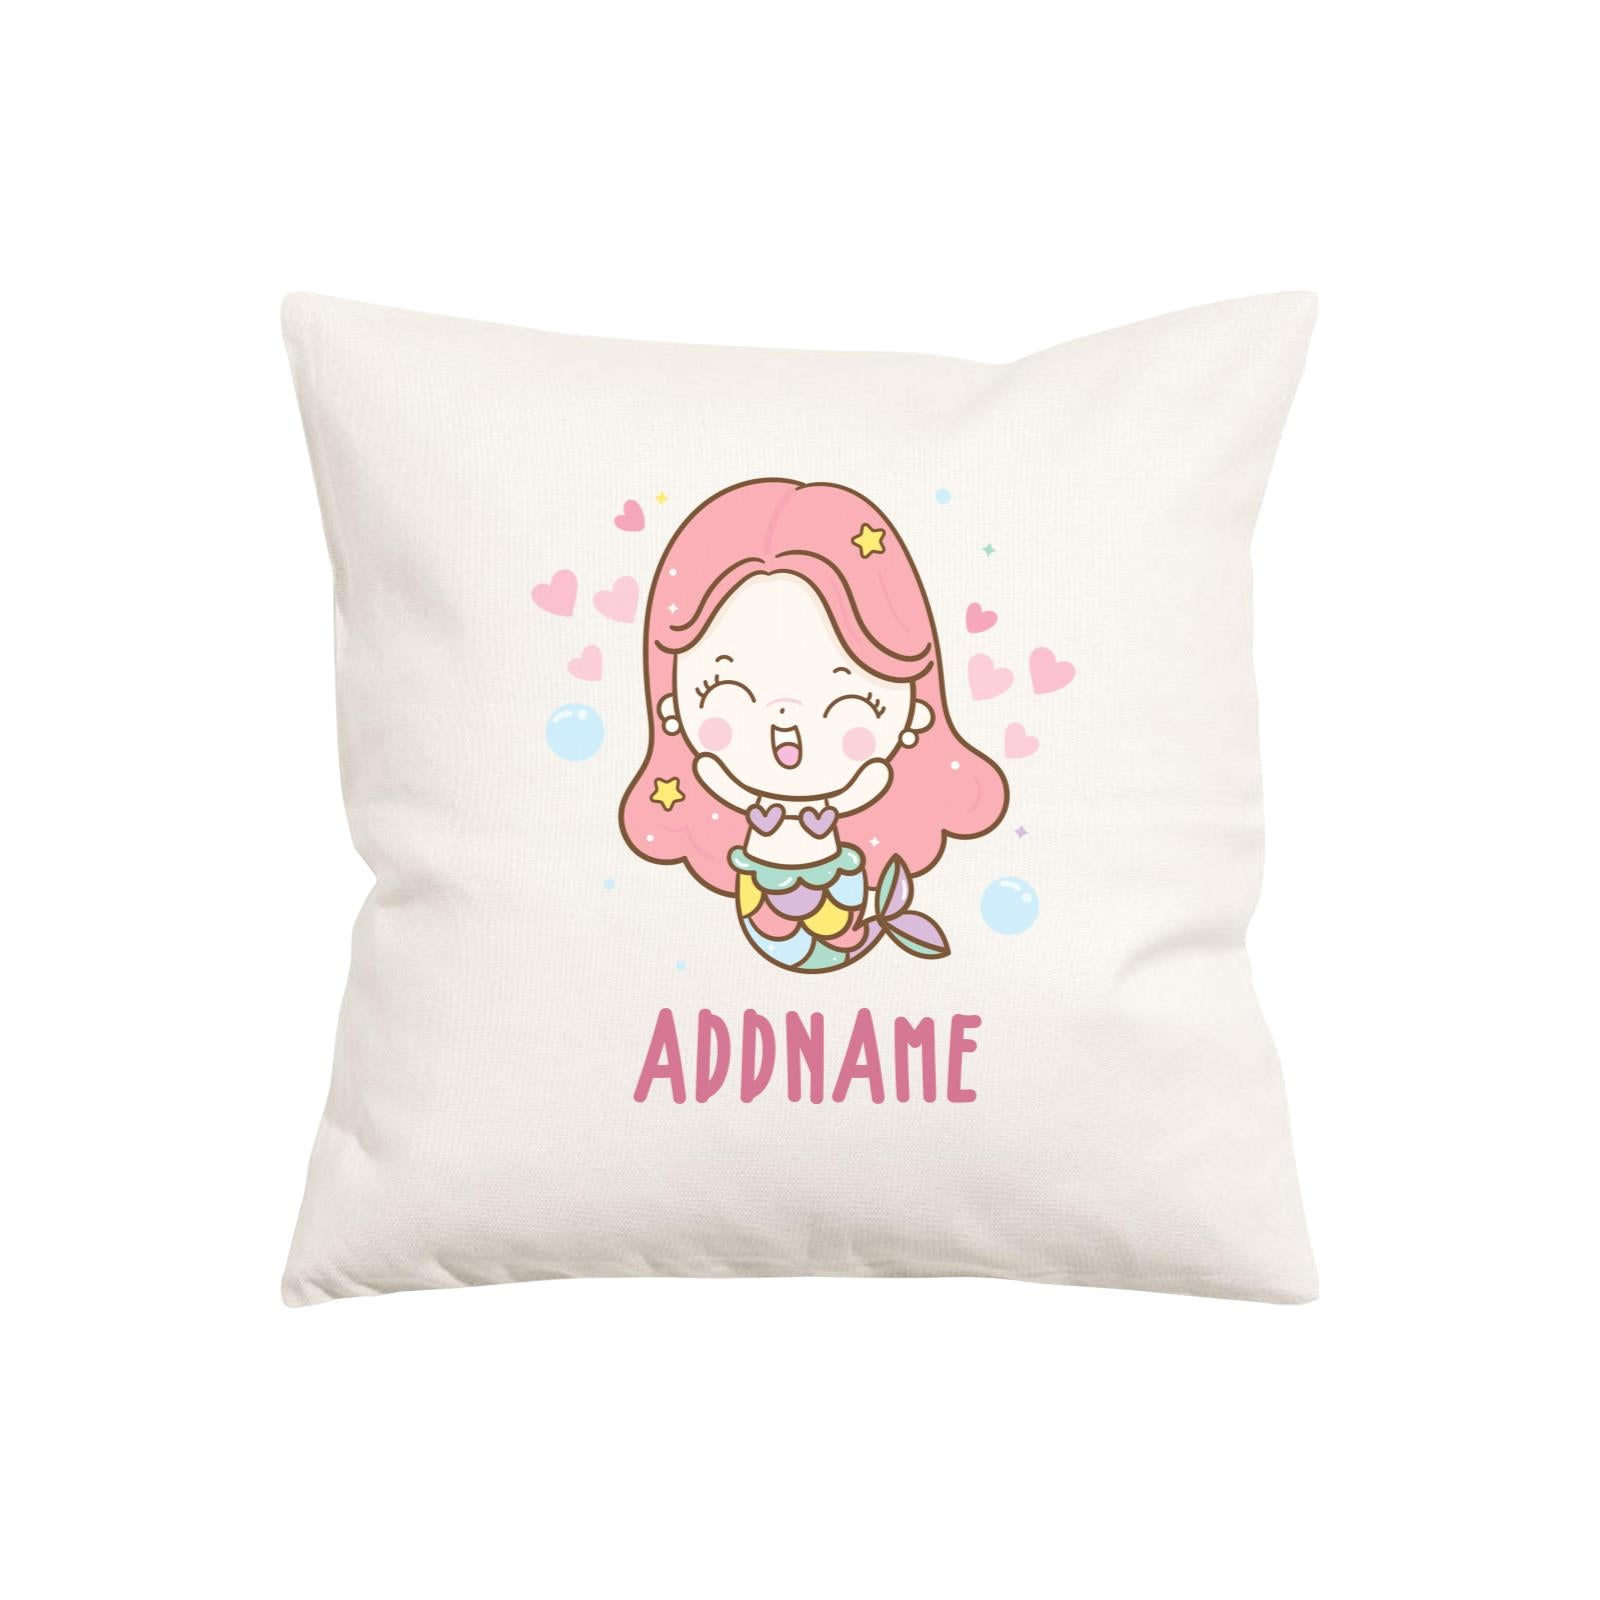 Unicorn And Princess Series Cute Happy Mermaid Girl Addname Pillow Cushion